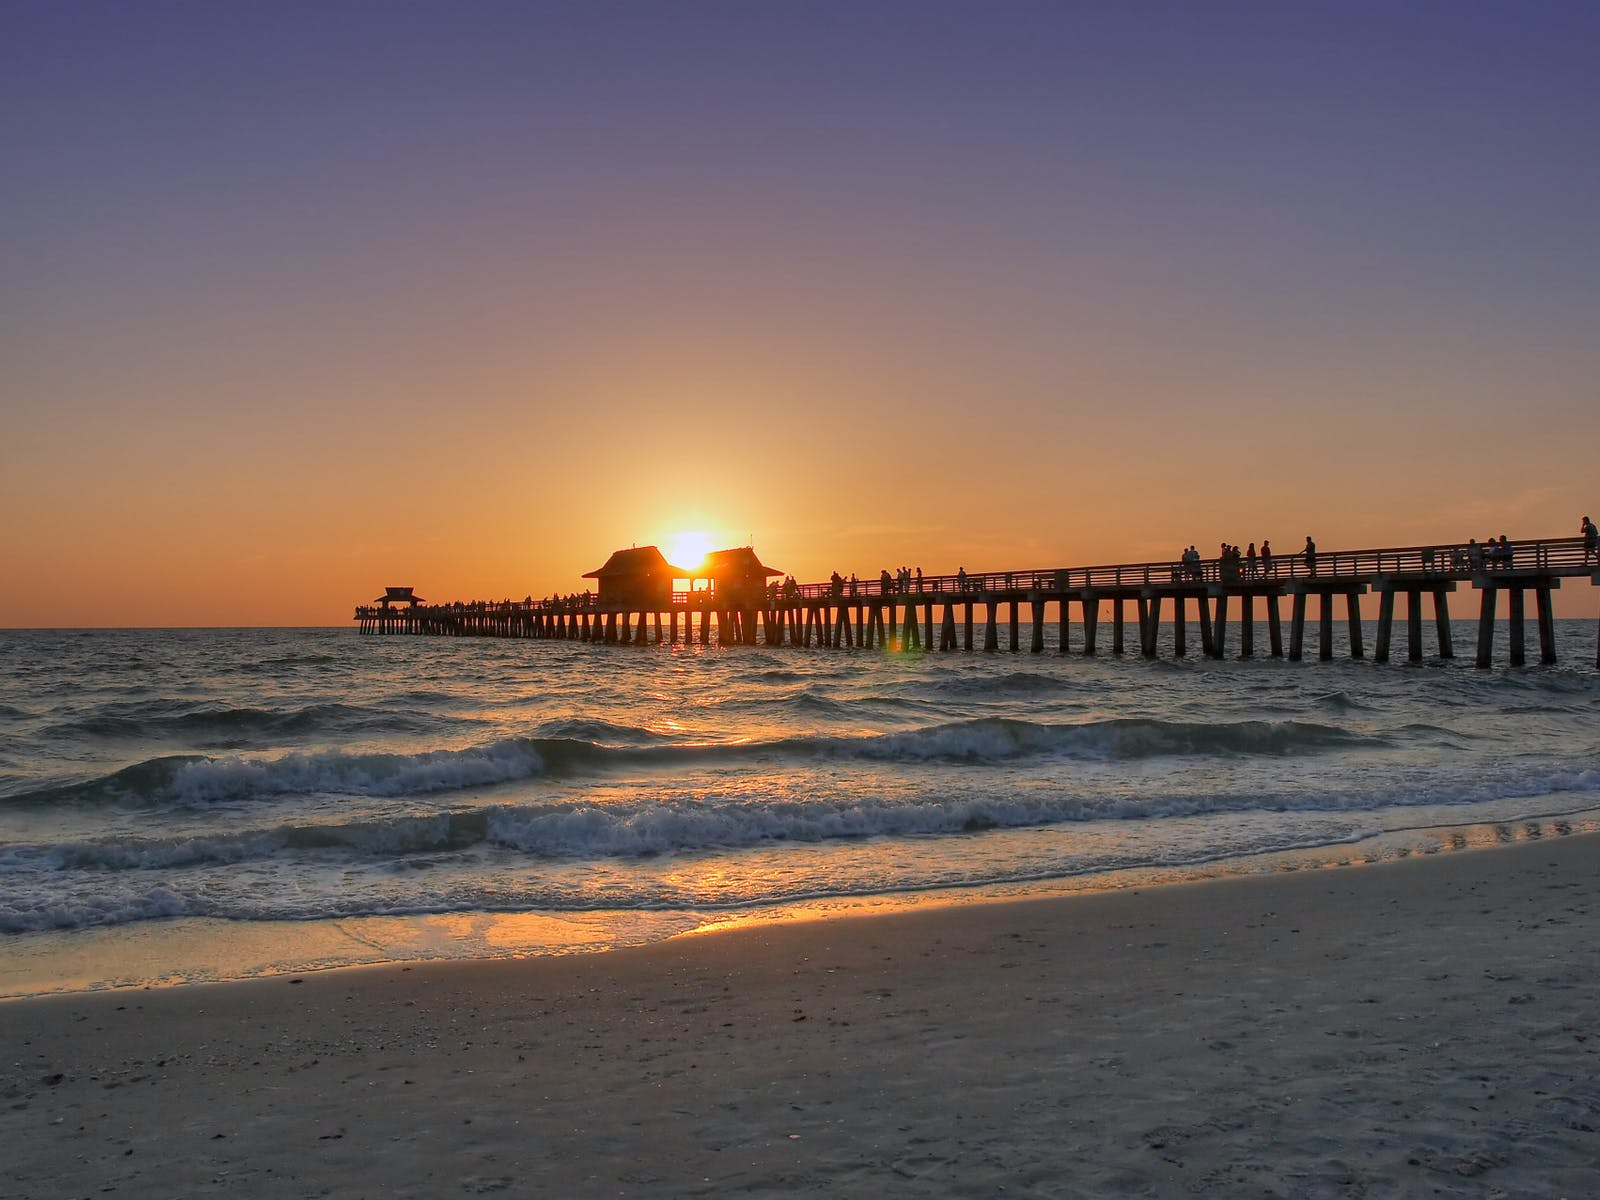 the sun setting over the ocean in Naples, Florida